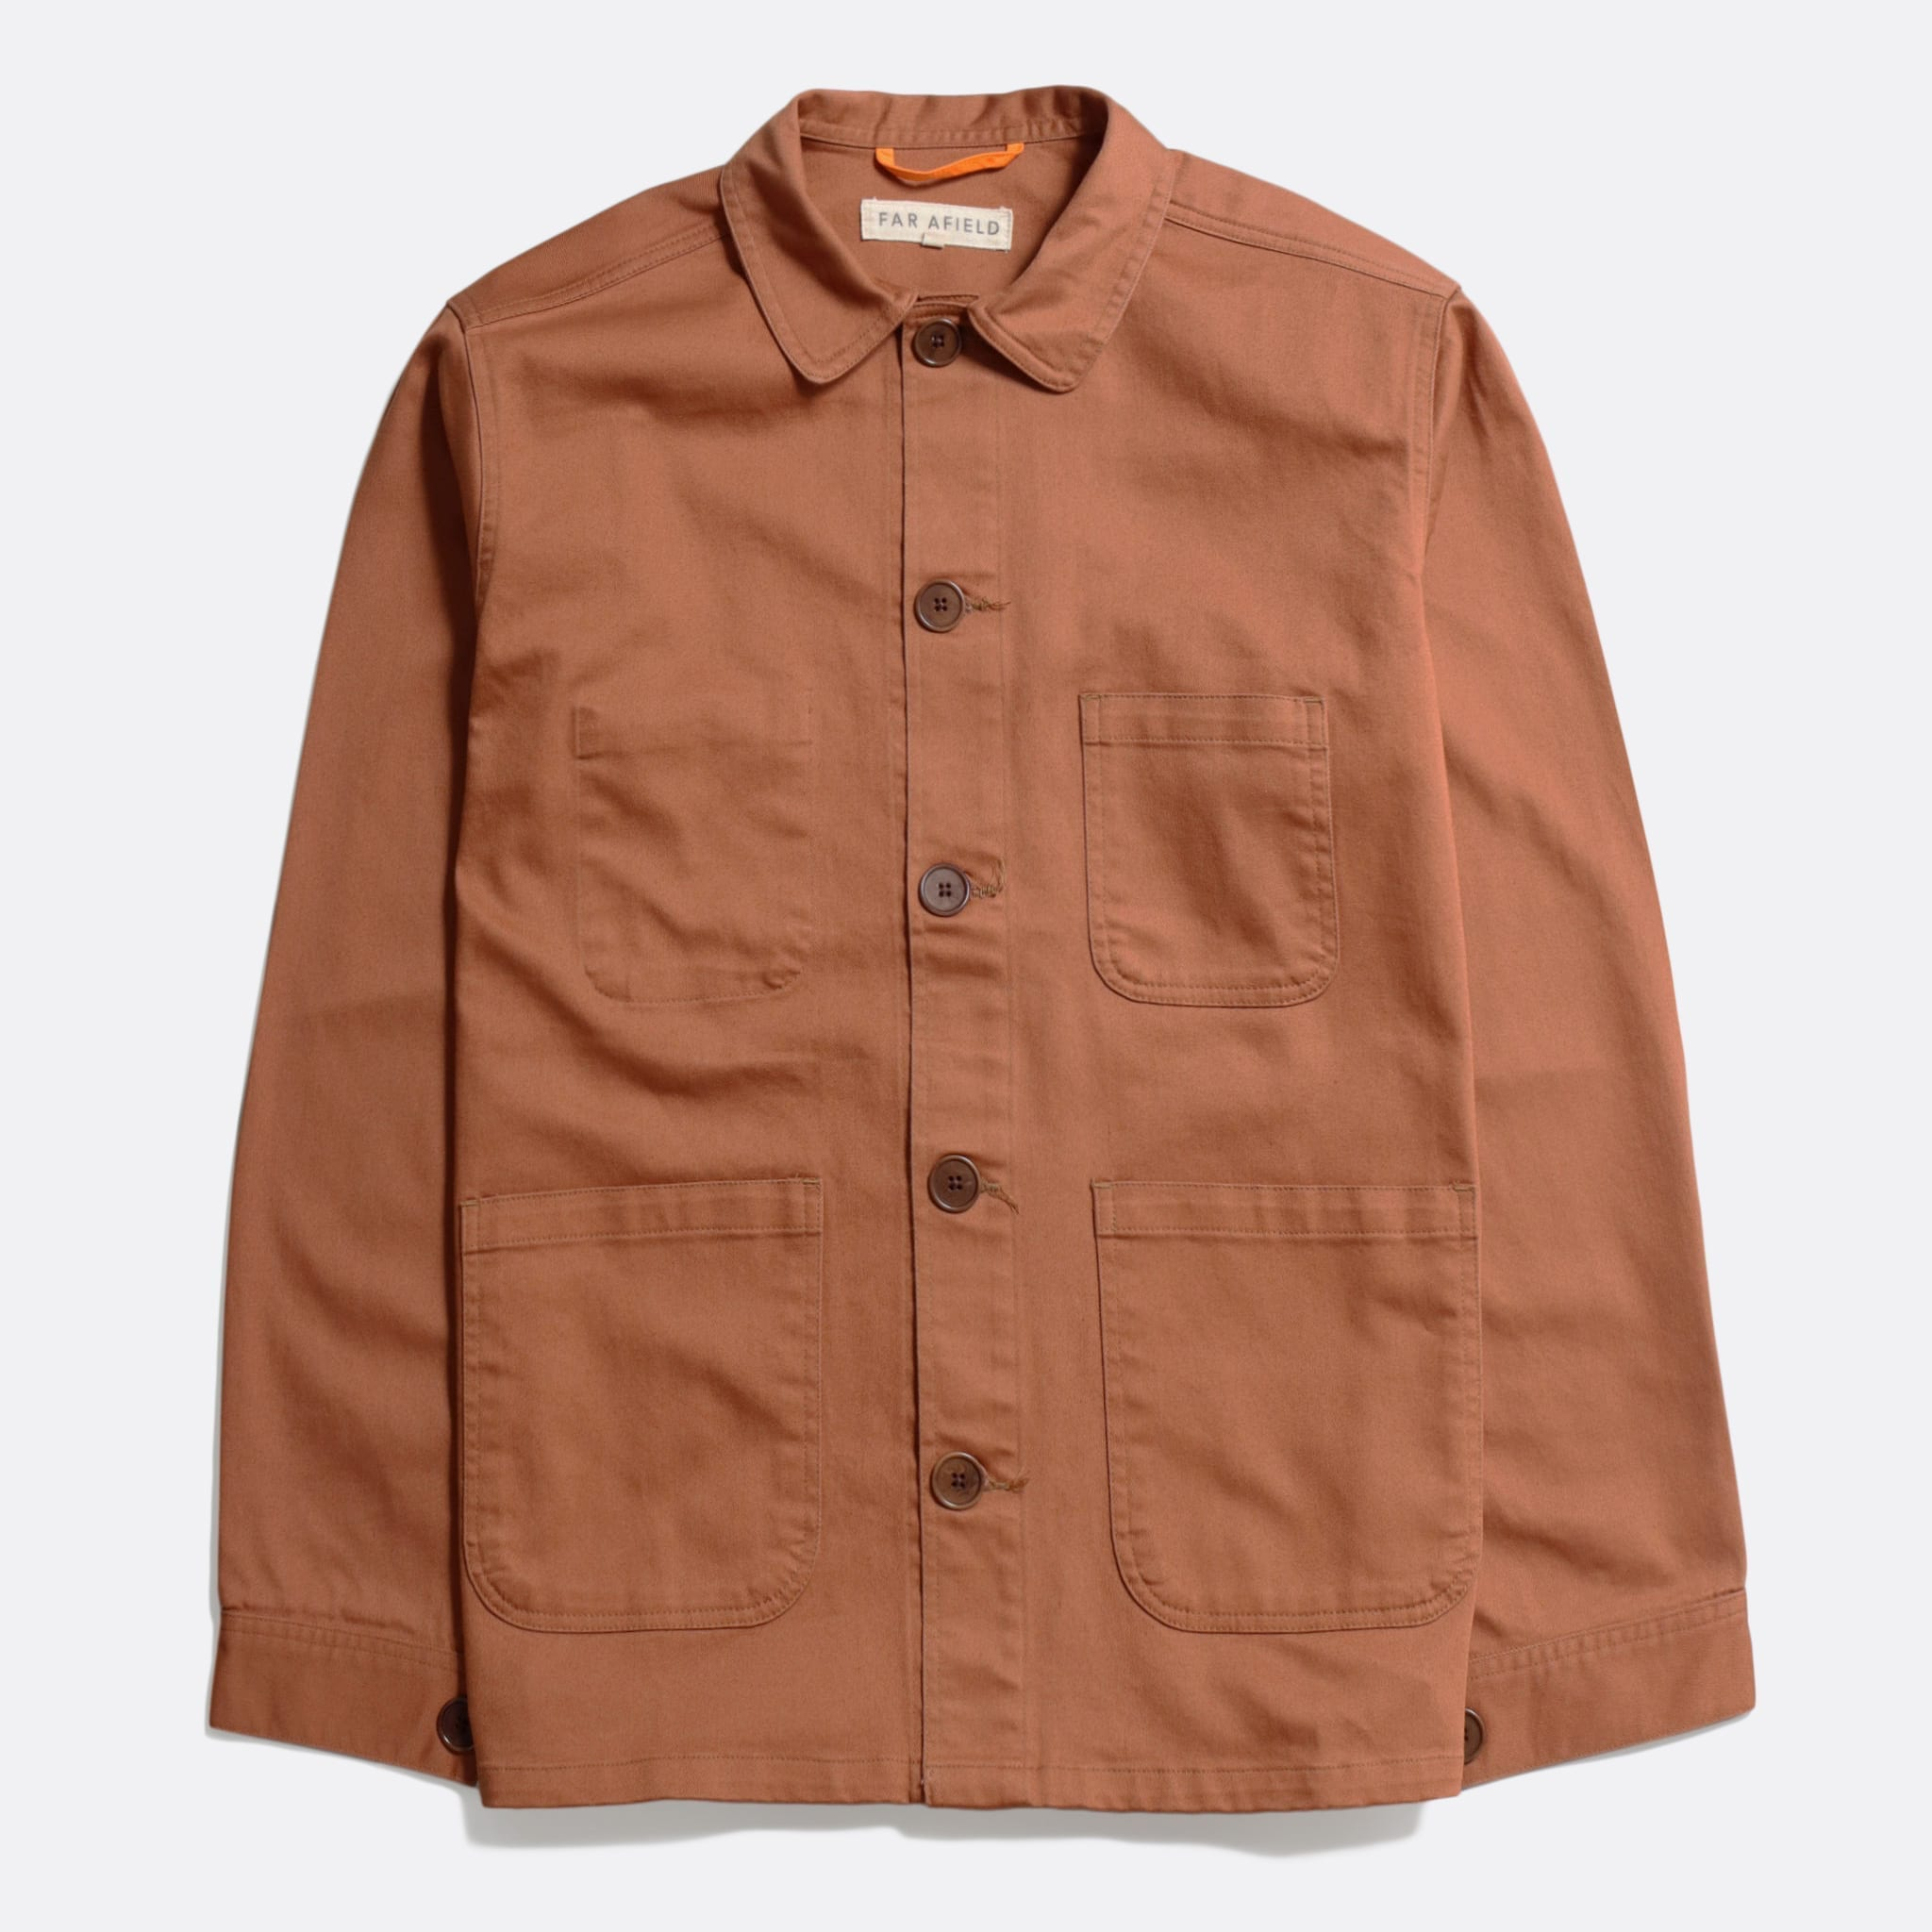 Far Afield Station Jacket a Thrush Brown Organic Cotton Twill Fabric Lightweight Utility Overshirt Classic Work